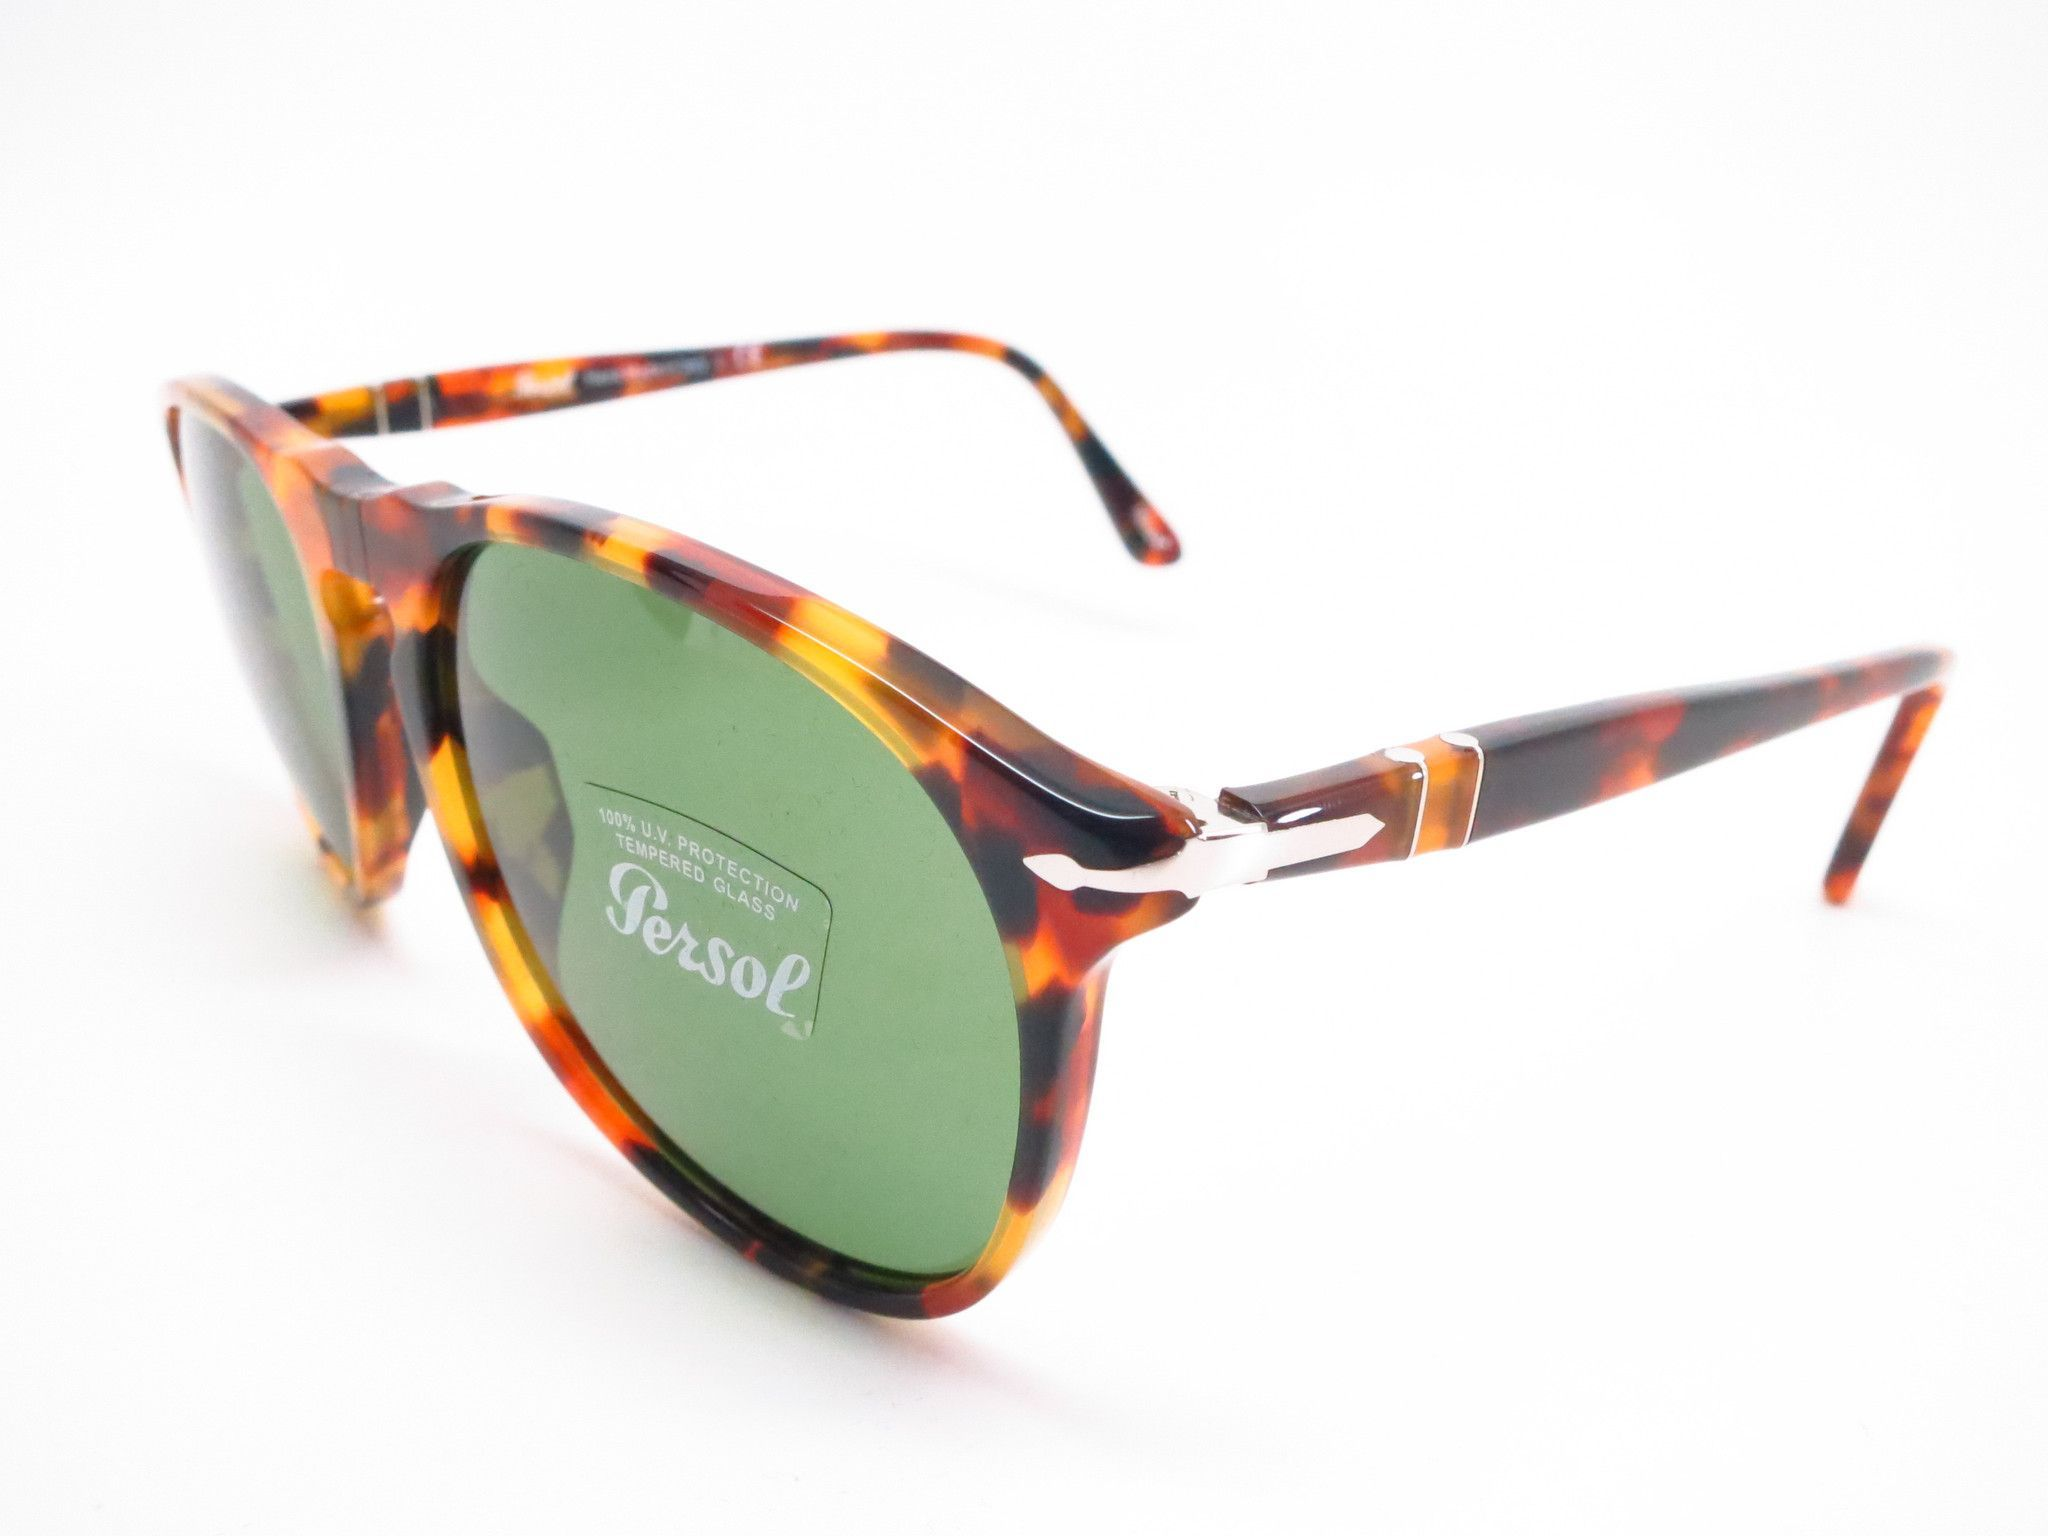 cb77f9039be1c Product Details of Persol PO 9649S Sunglasses Brand   Persol Model Name    PO 9649S Color